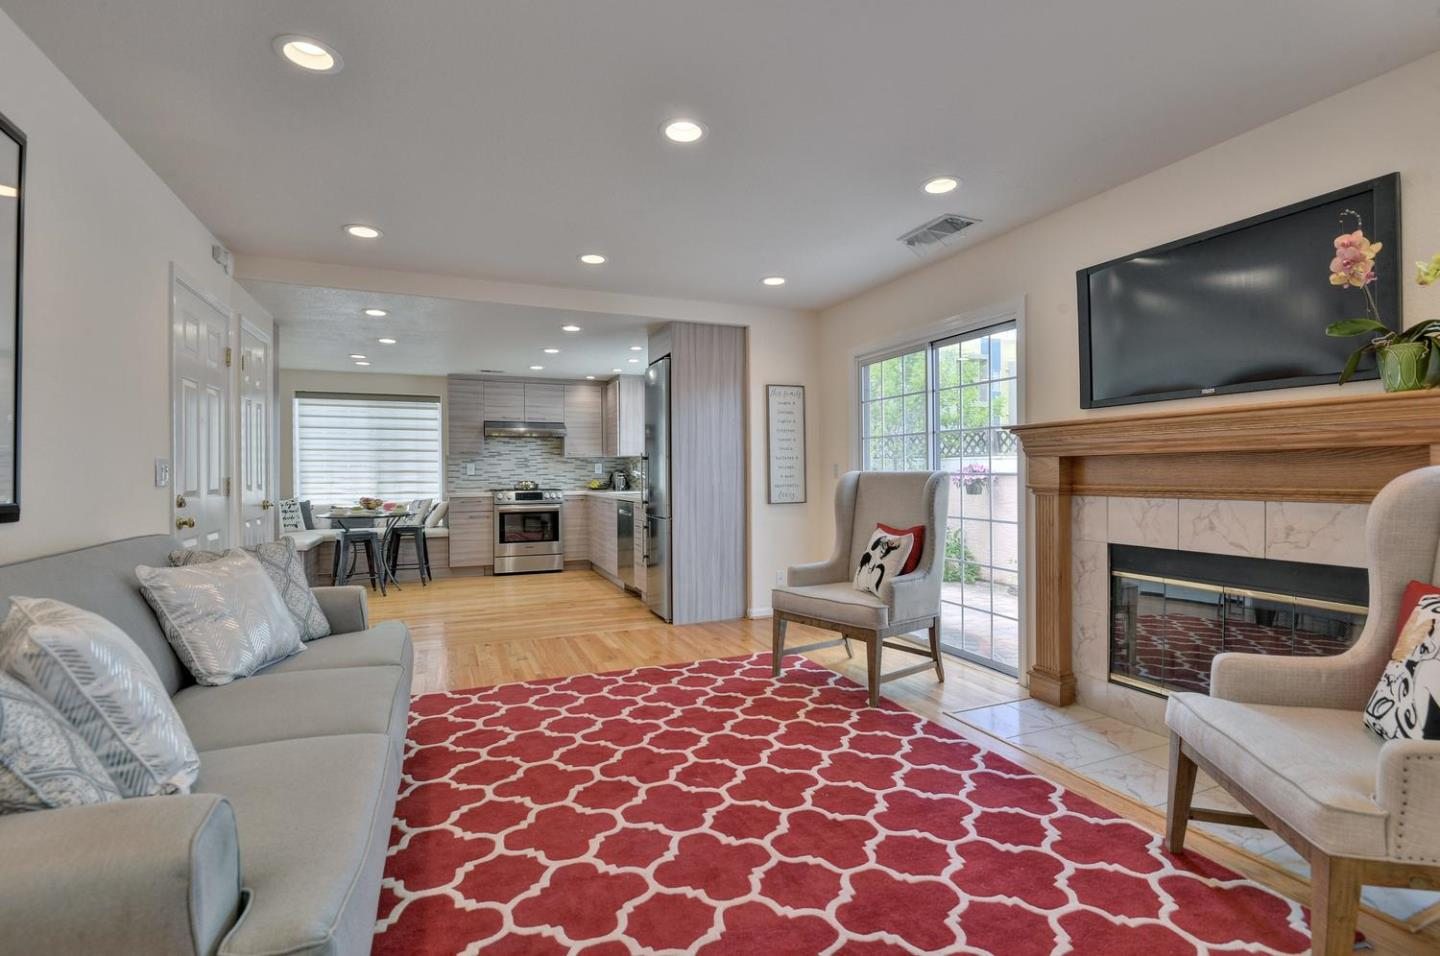 Detail Gallery Image 1 of 21 For 3131 Membrillo Corte, Santa Clara, CA, 95051 - 3 Beds | 2/1 Baths